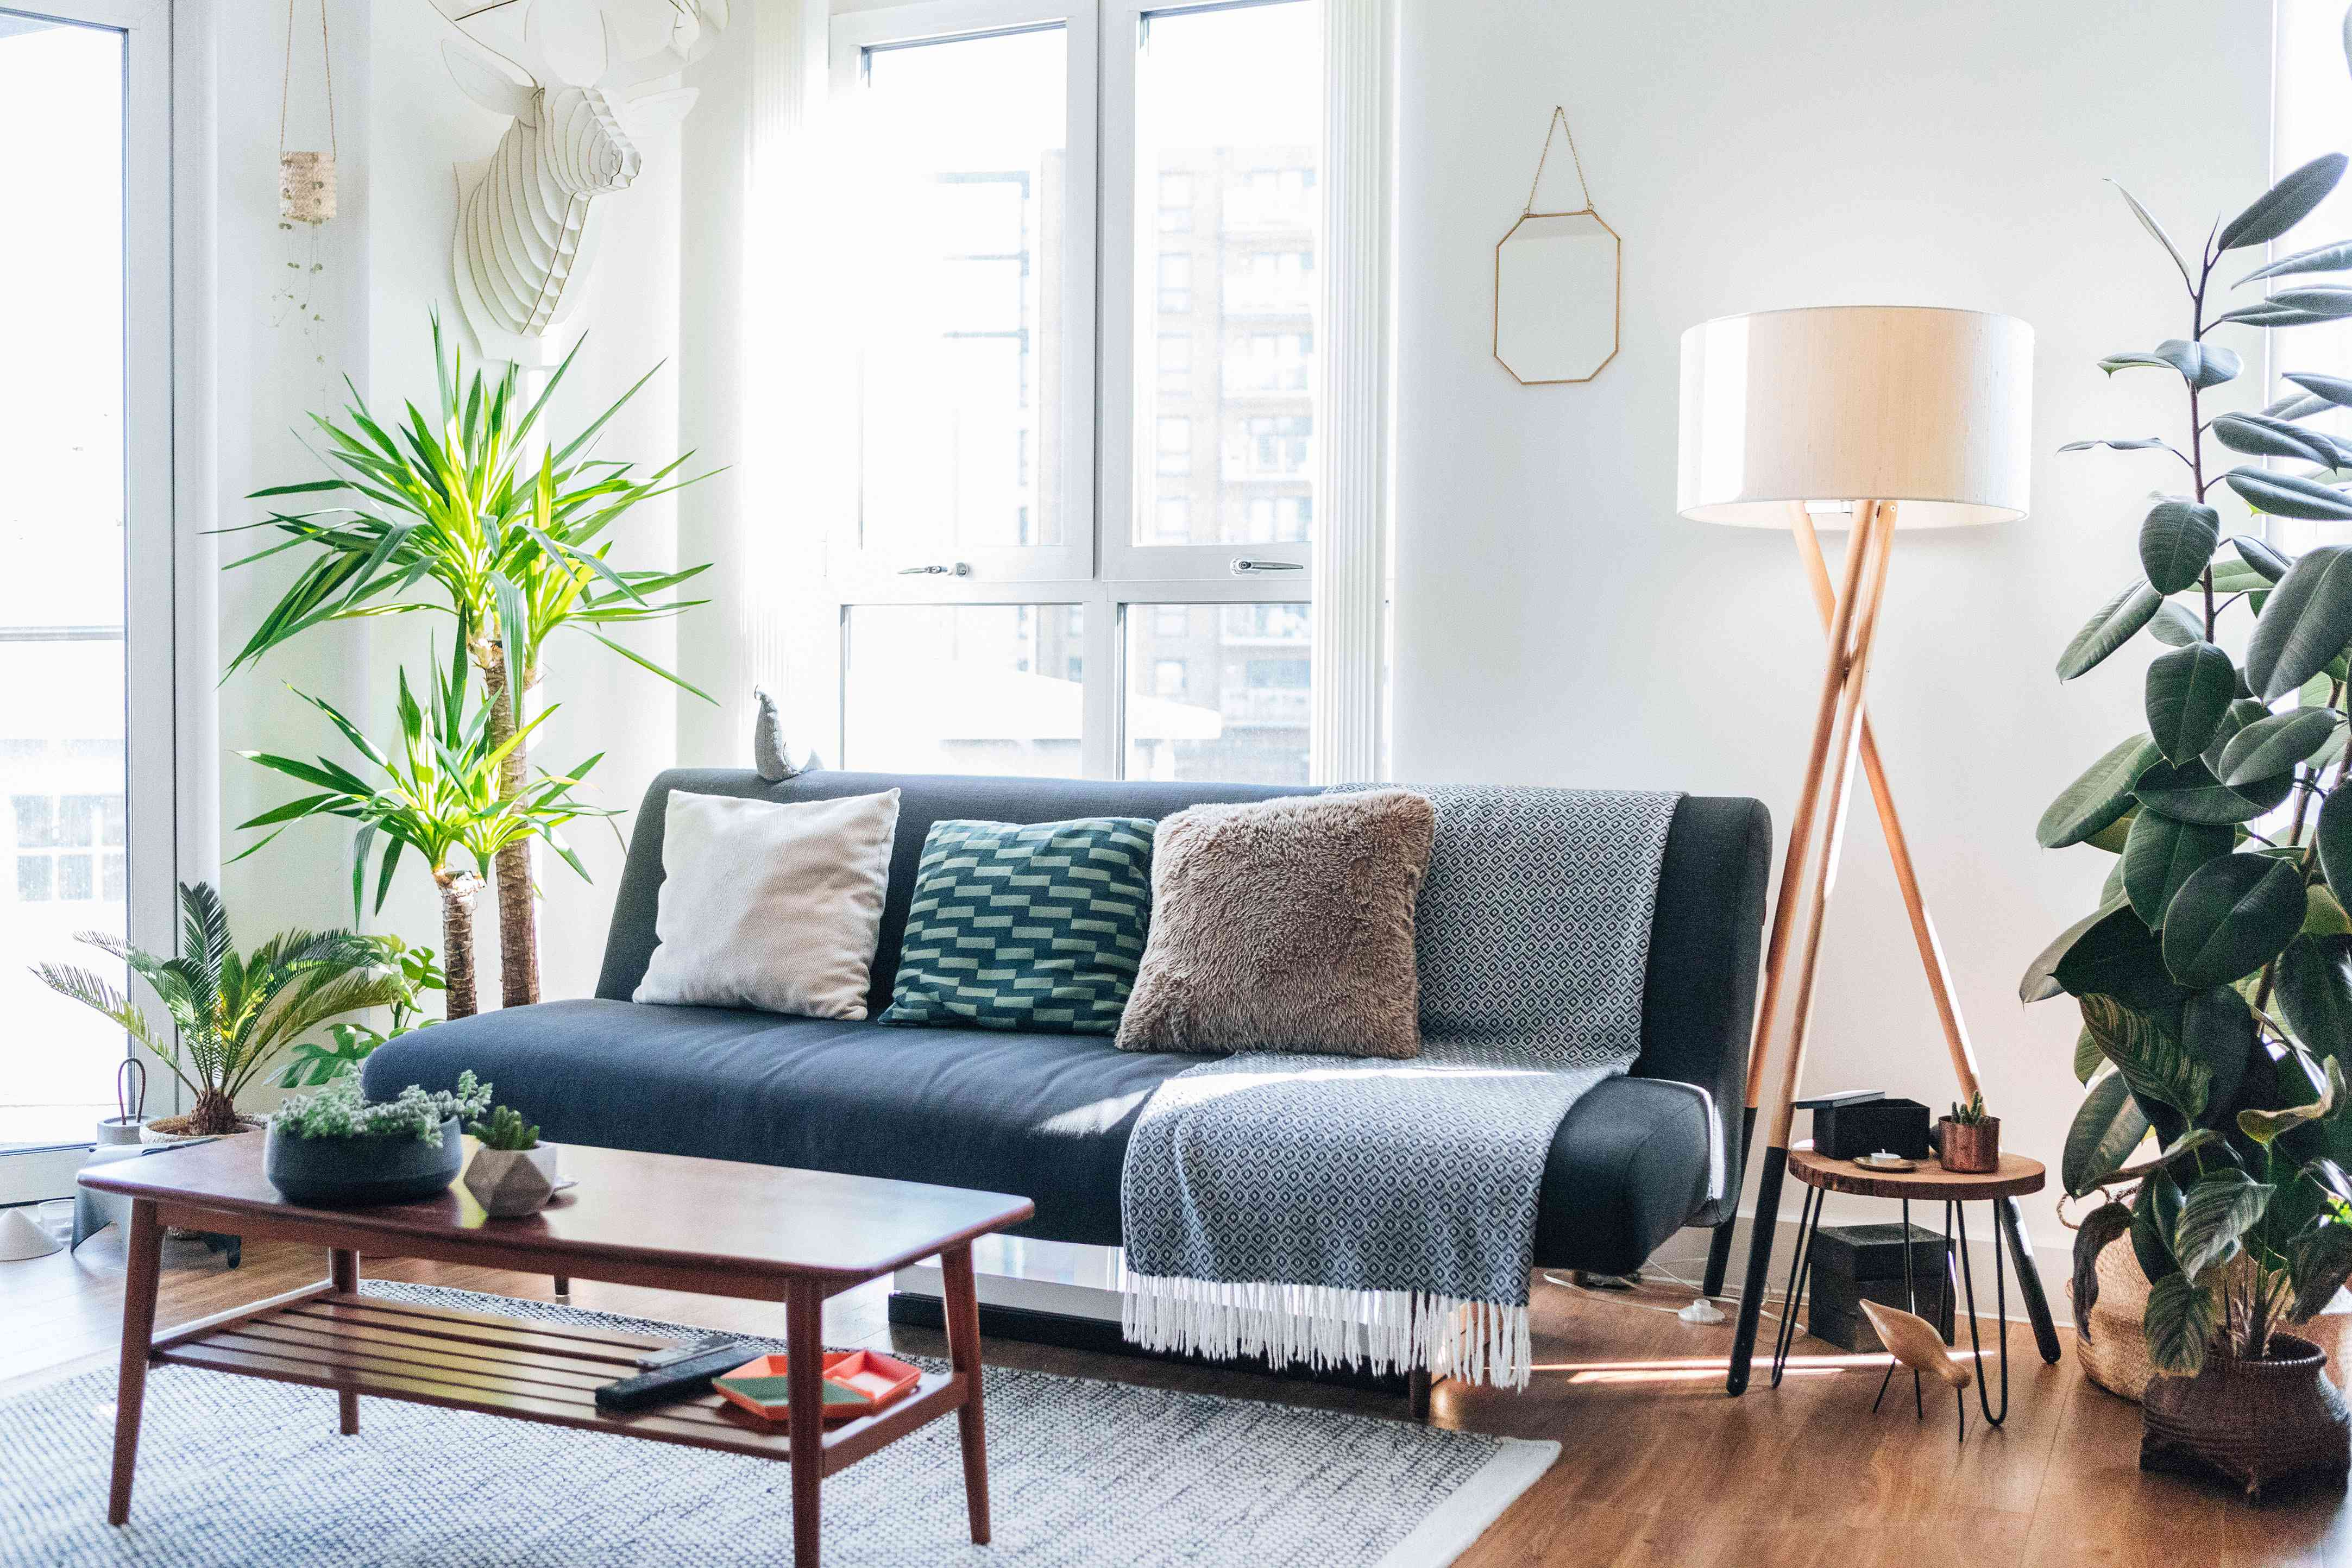 A modern, stylish and bright living room with houseplants.